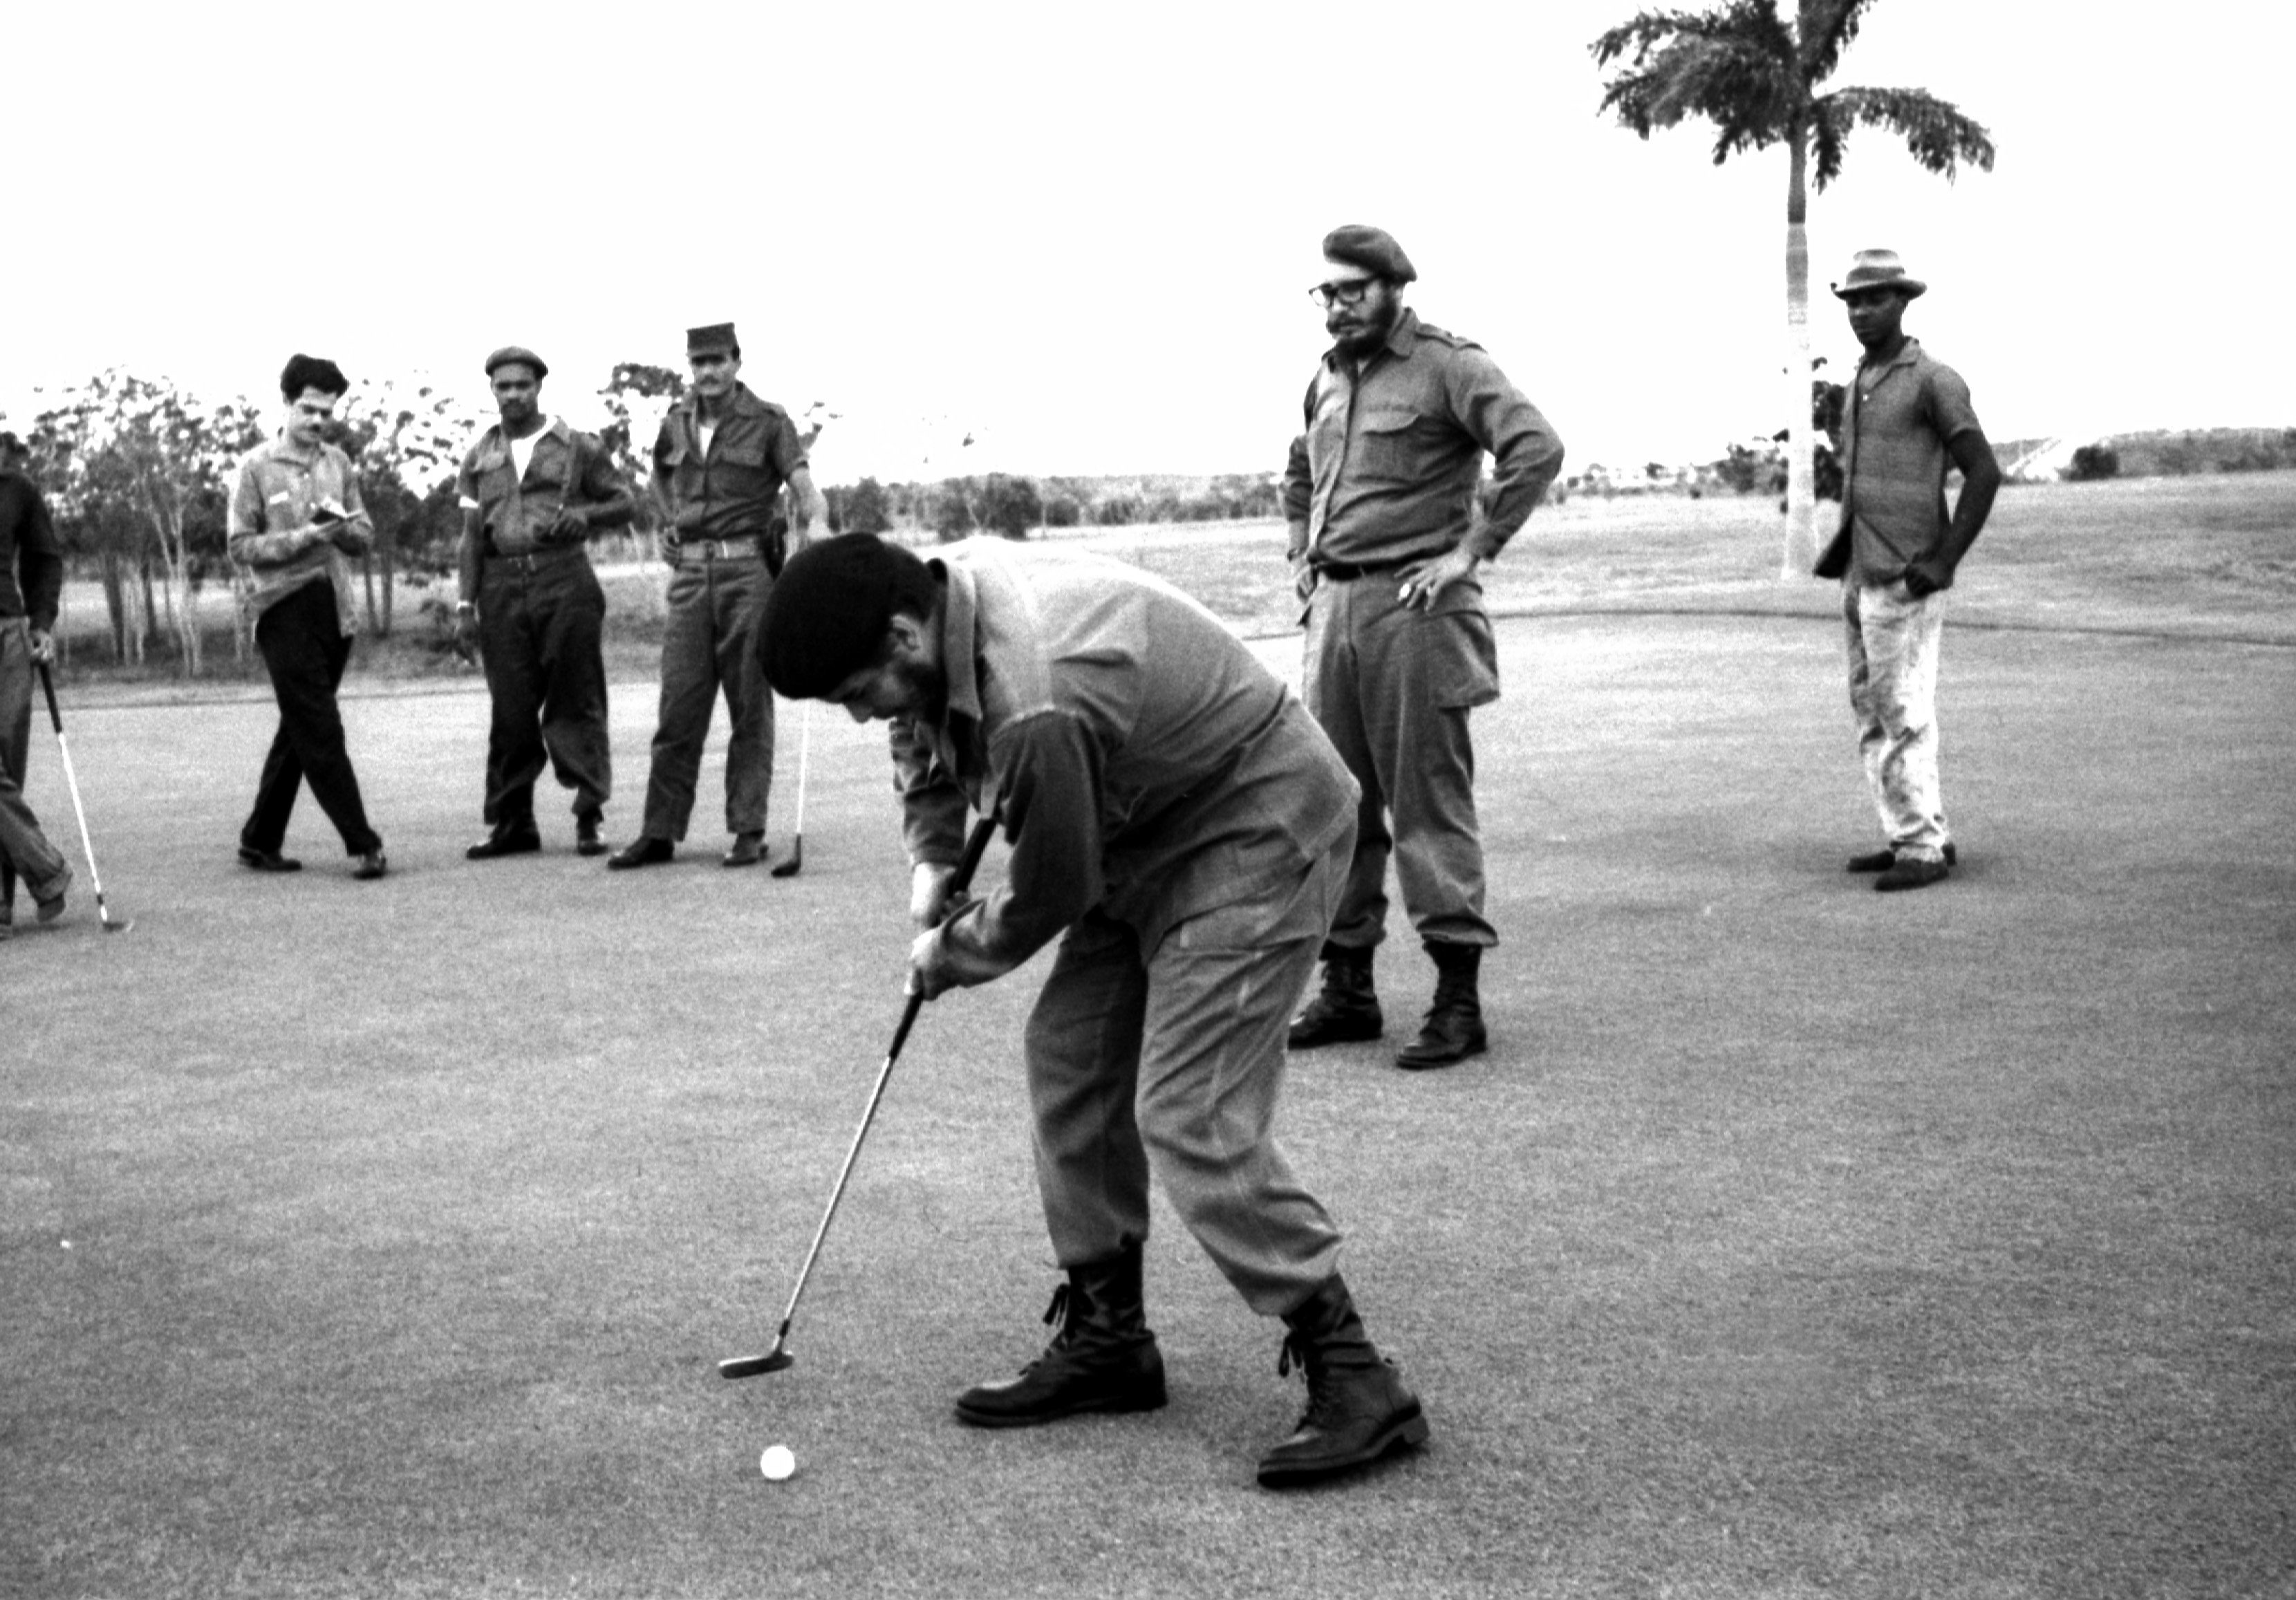 Ernesto Che Guevara (front) plays golf as Fidel Castro stands behind him at Colina Villareal in Havana in this undated file photo. REUTERS/Prensa Latina/File Photo